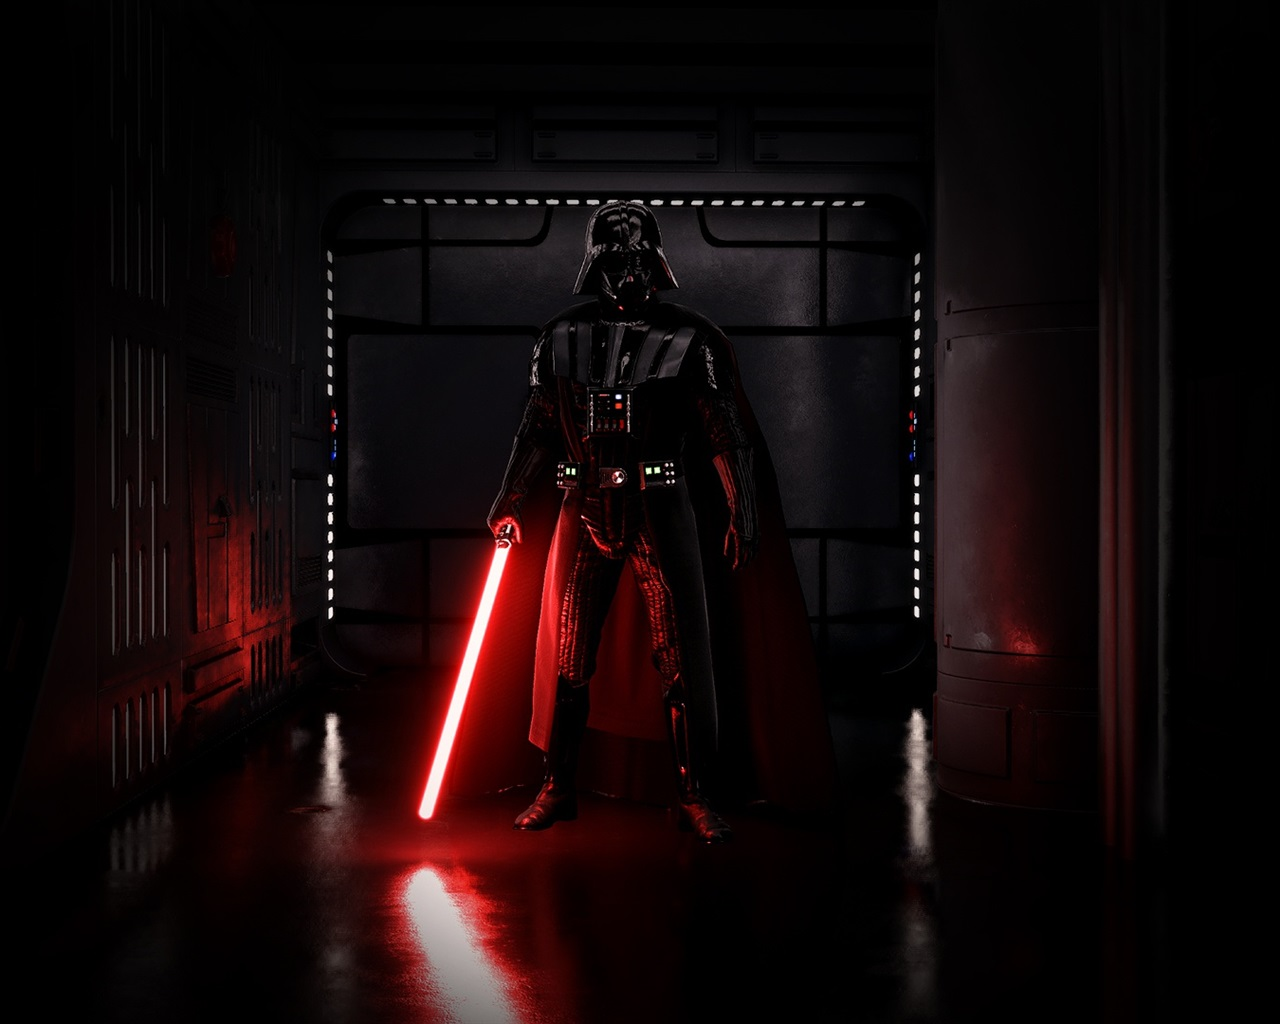 Wallpaper Darth Vader Sword Ea Games Star Wars Battlefront 1920x1080 Full Hd 2k Picture Image